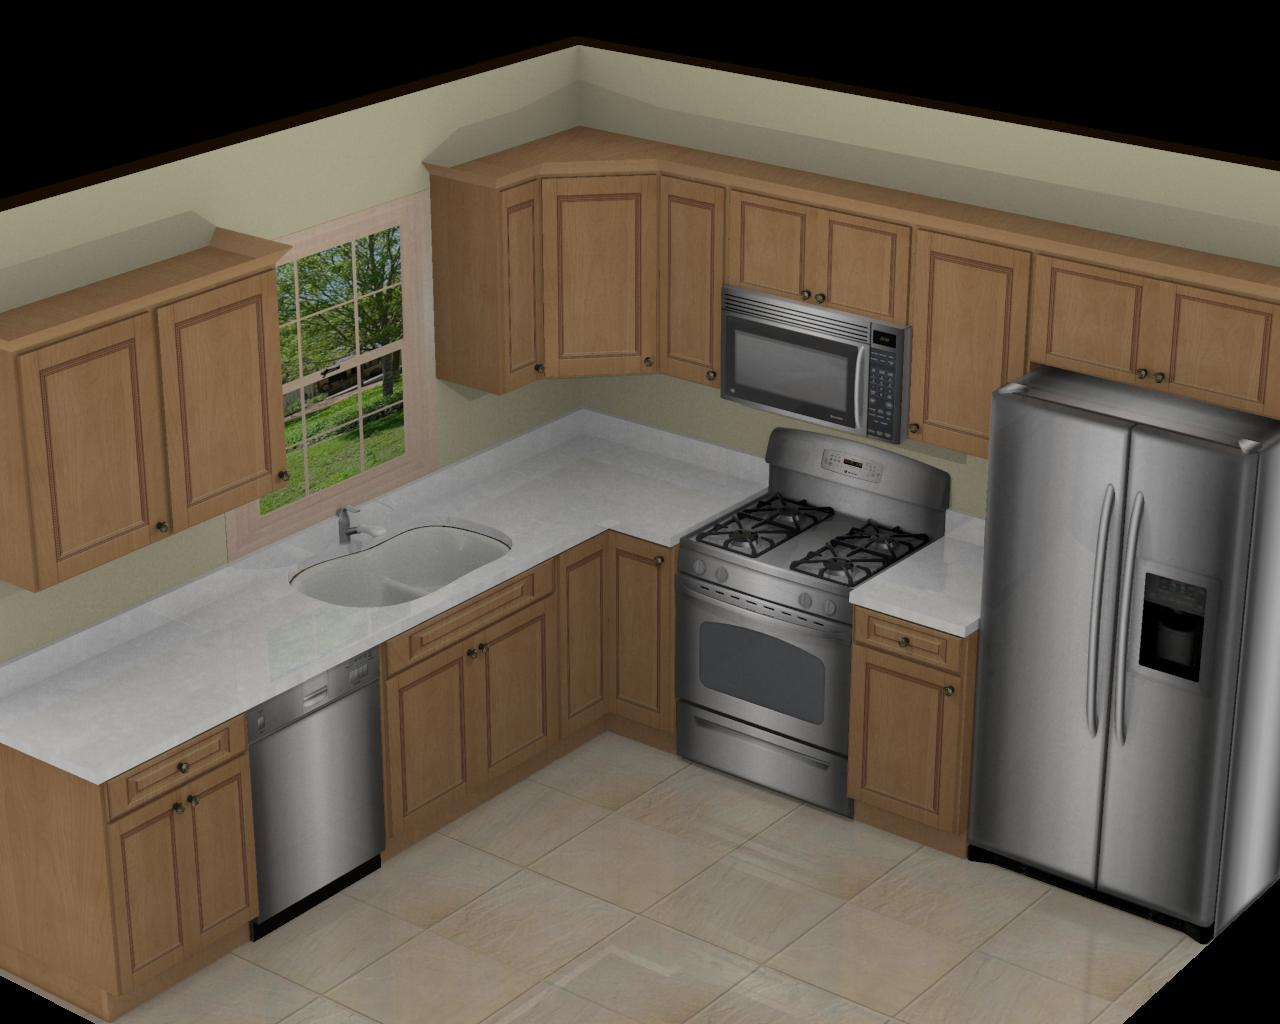 Foundation dezin decor 3d kitchen model design - Kitchen styles and designs ...